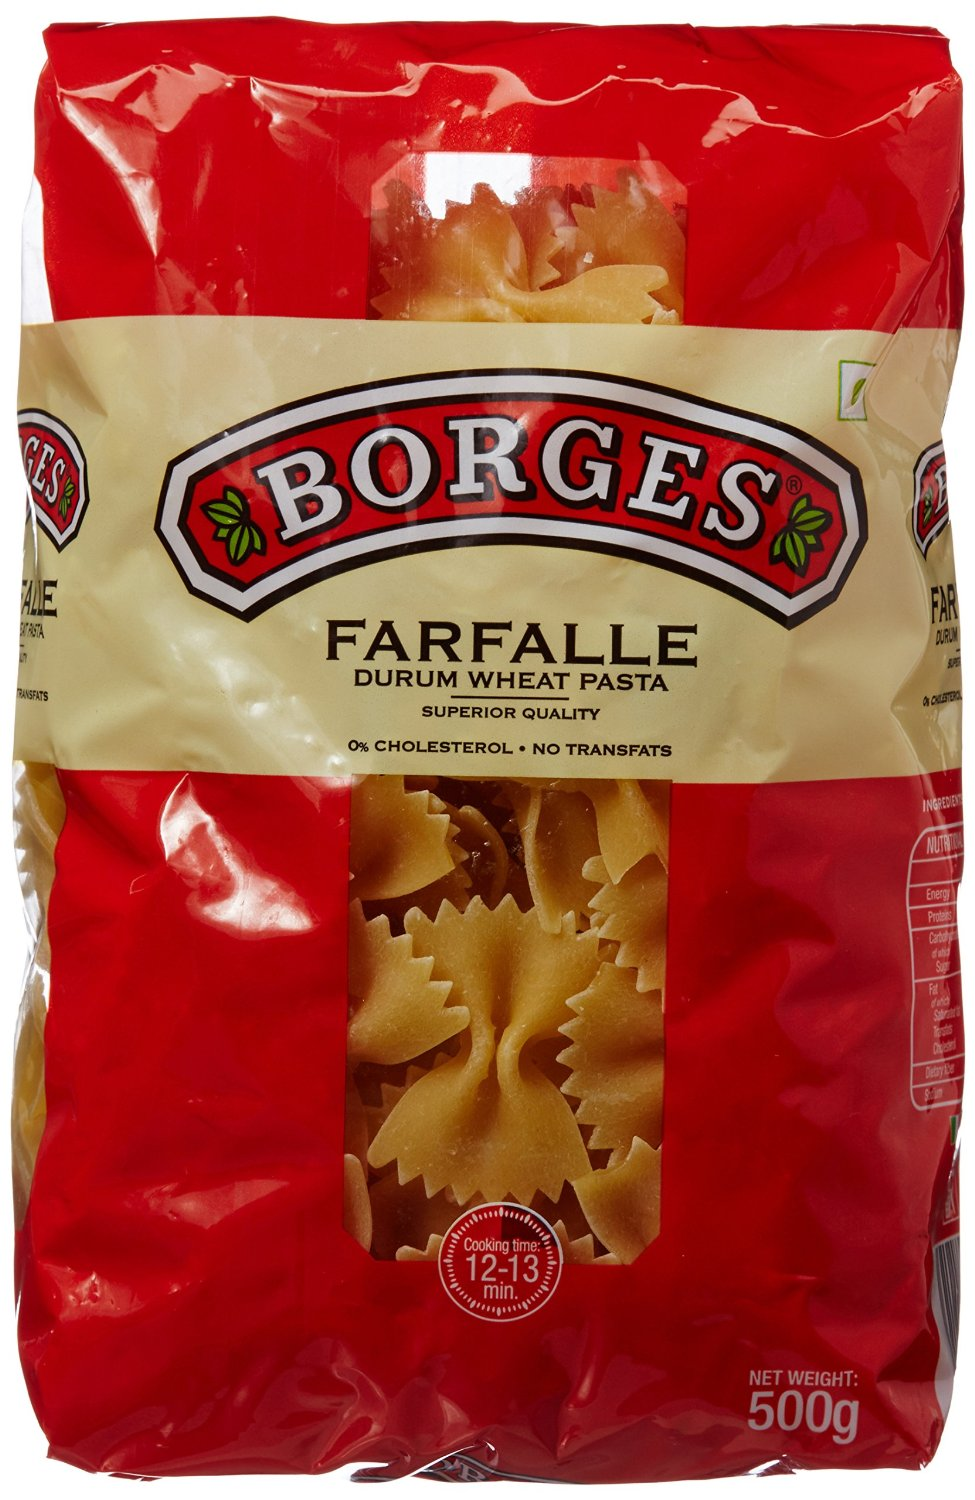 Amazon - Buy Borges Farfalle Durum Wheat Pasta, 500g at Rs 99 Only